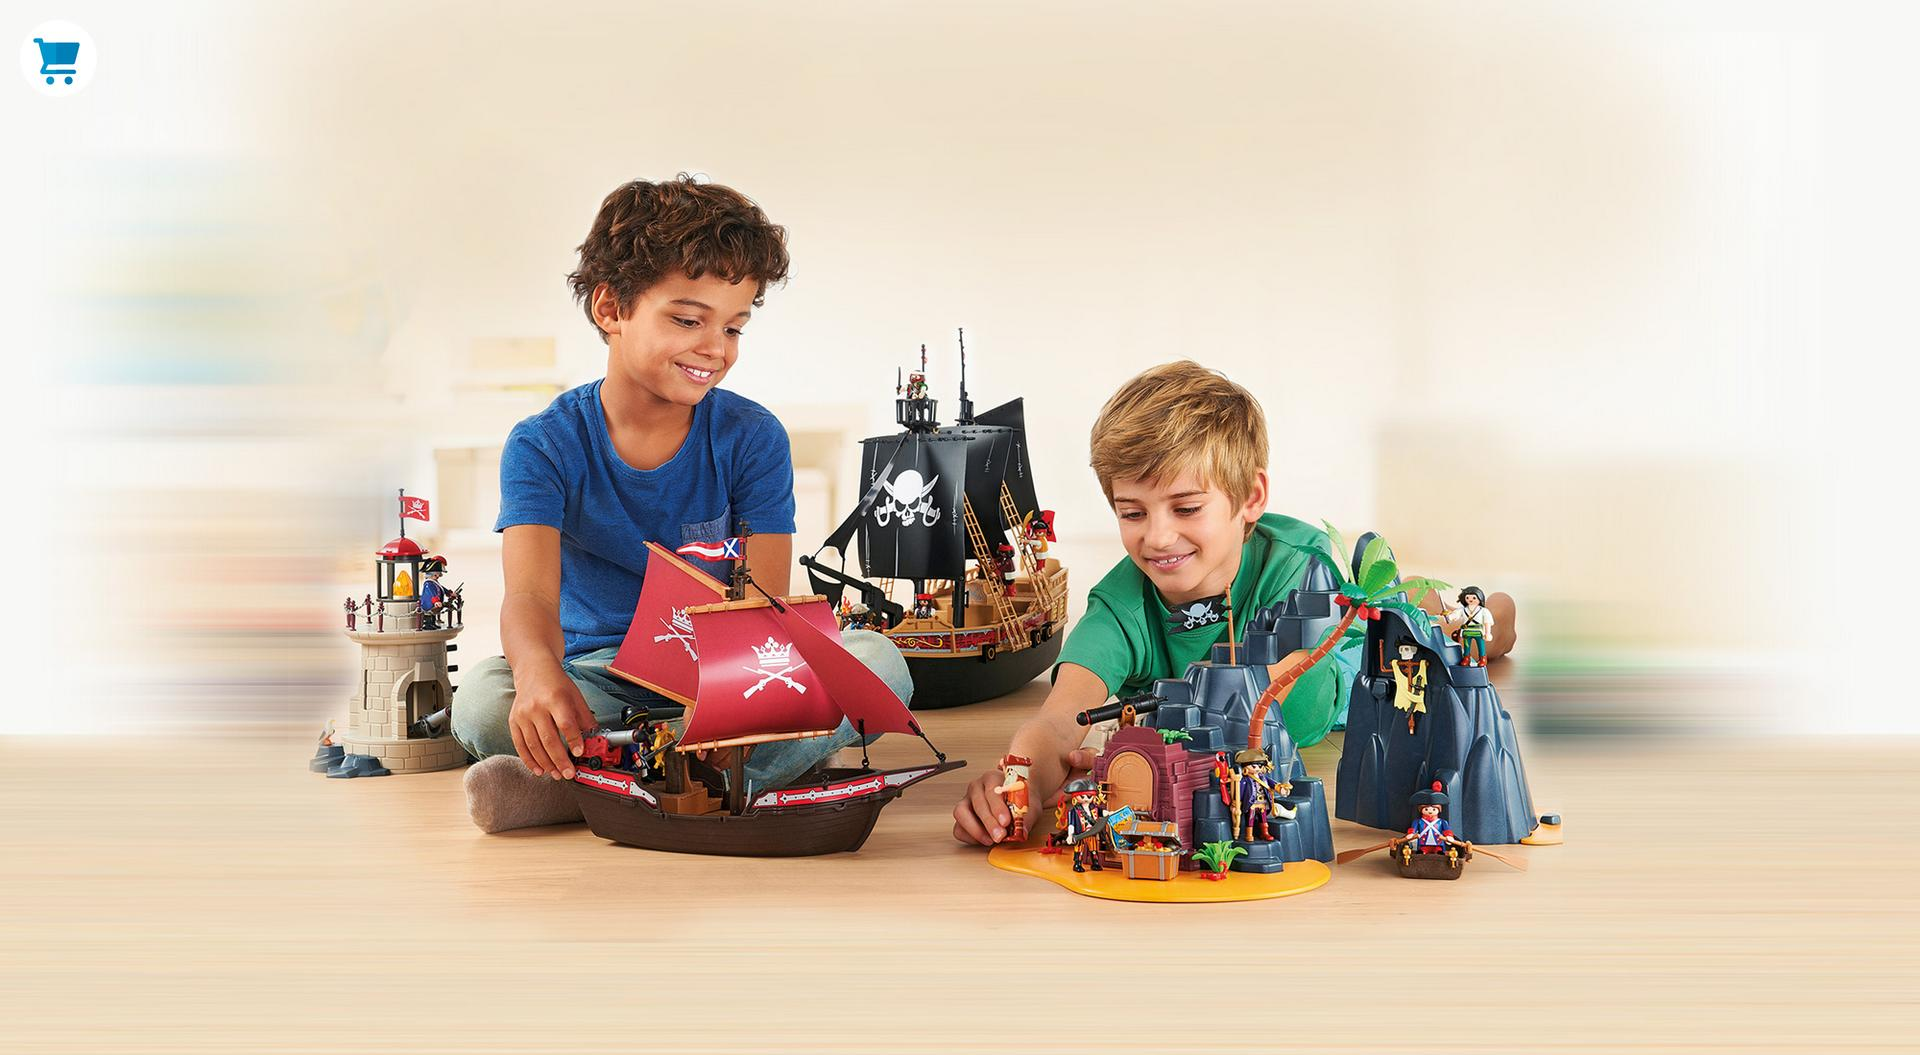 PLAYMOBIL US - 20% off coupon.